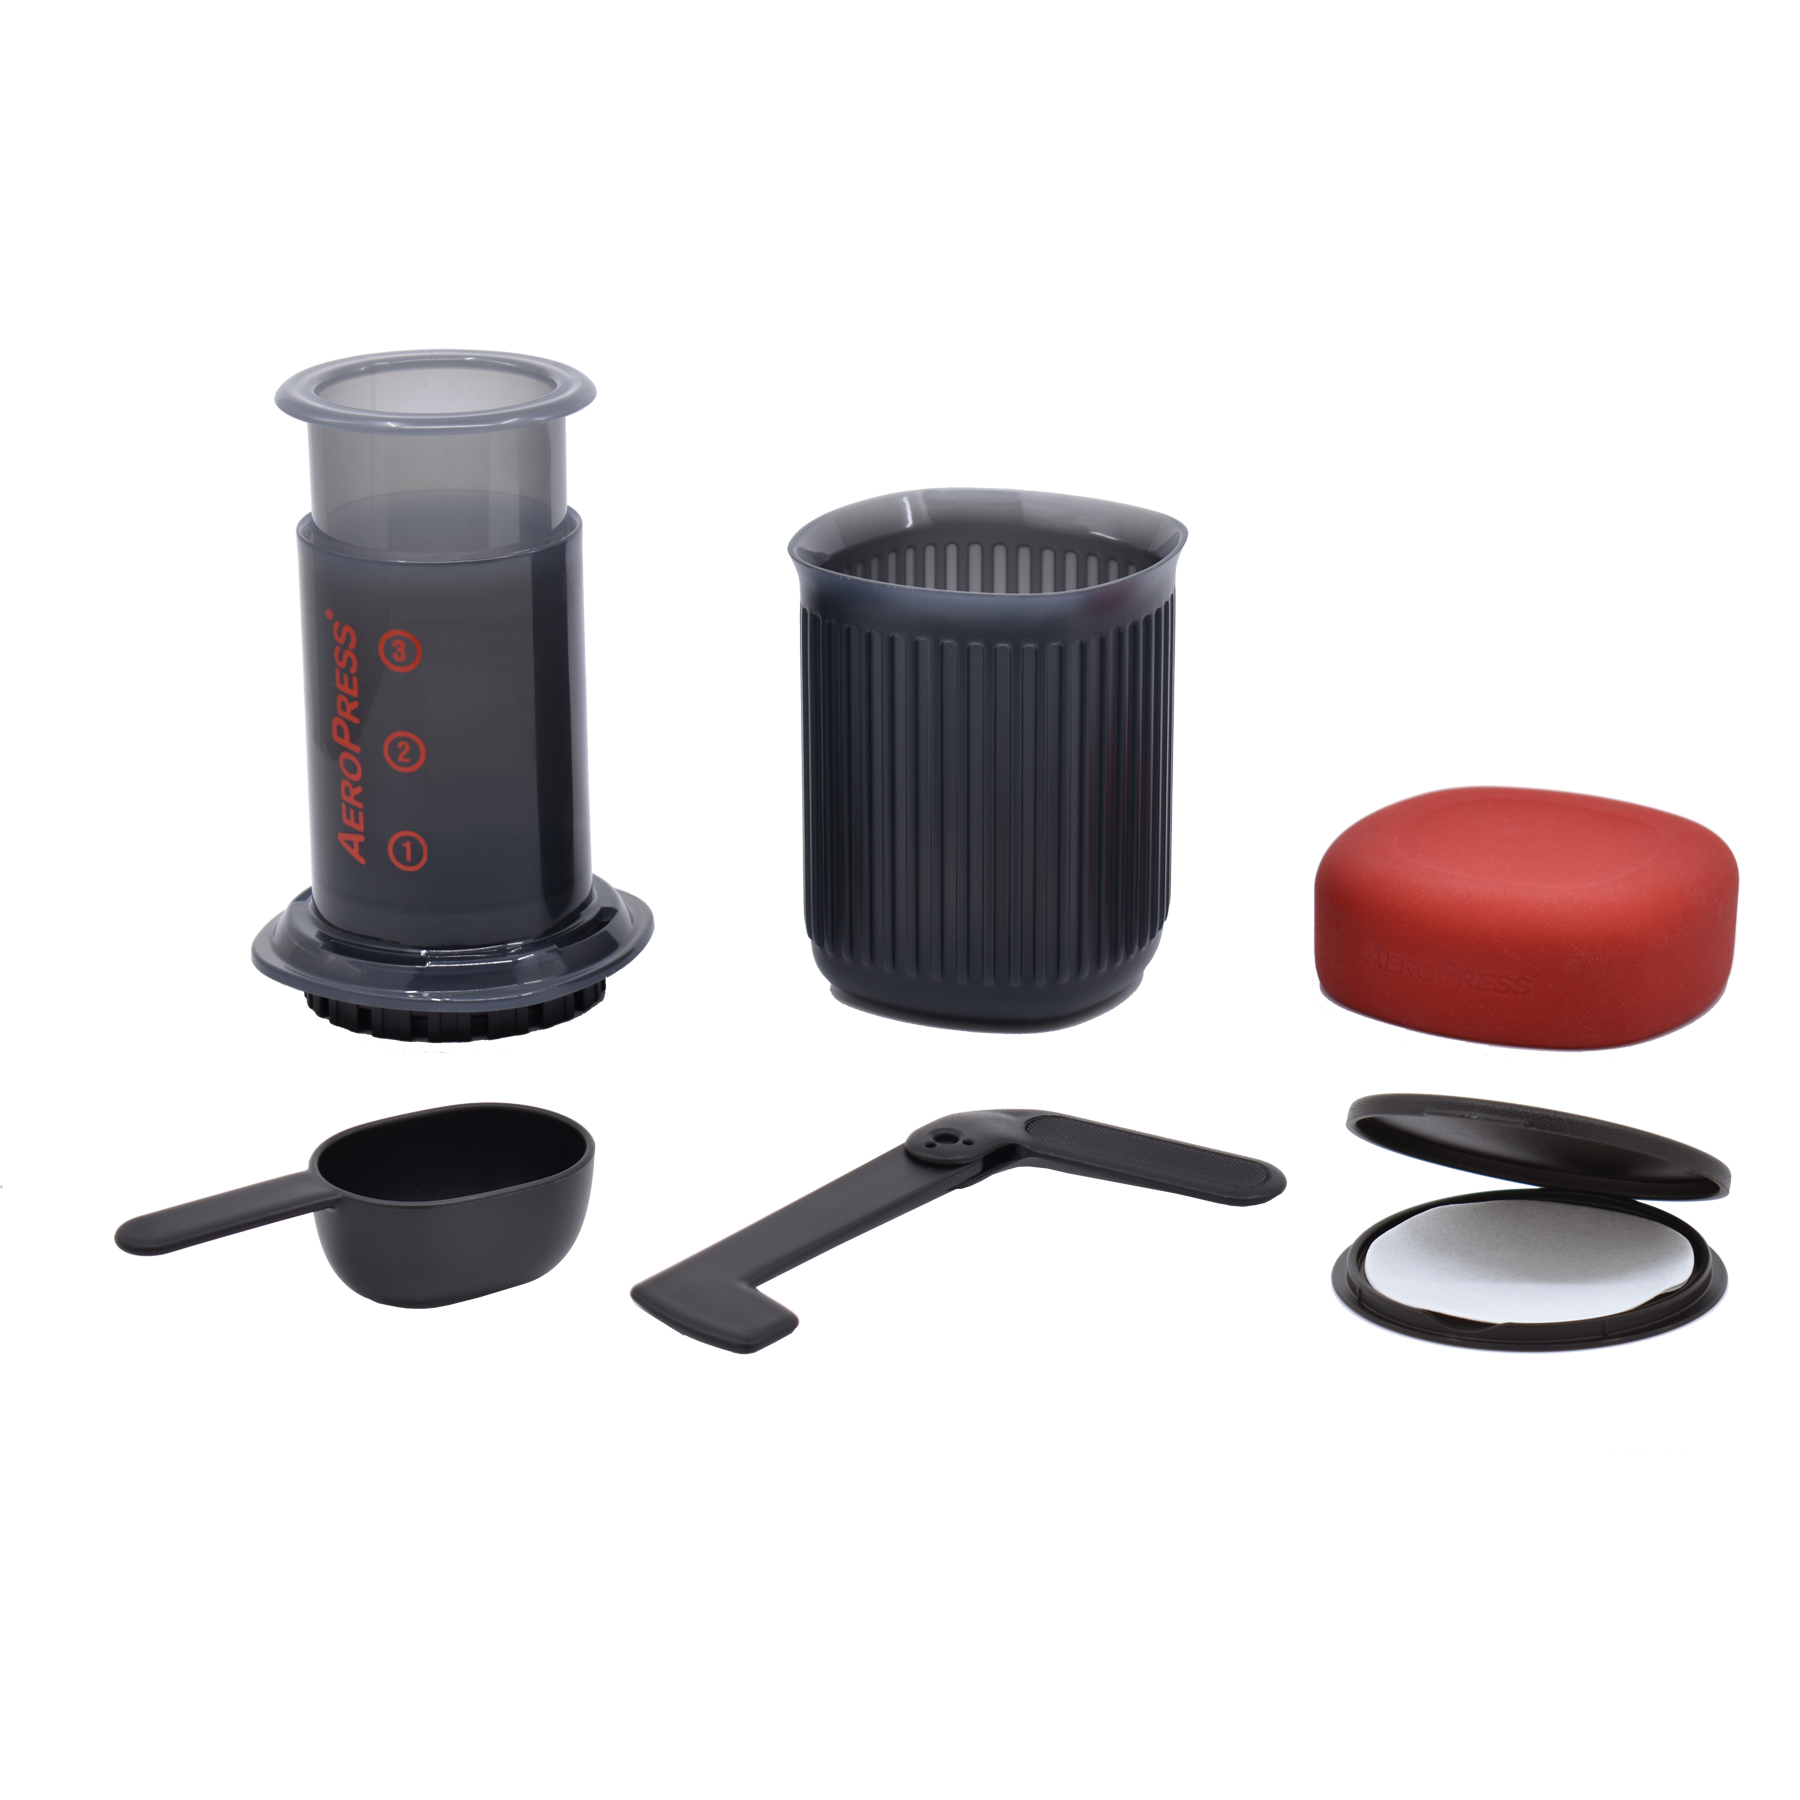 aeropress with accessories